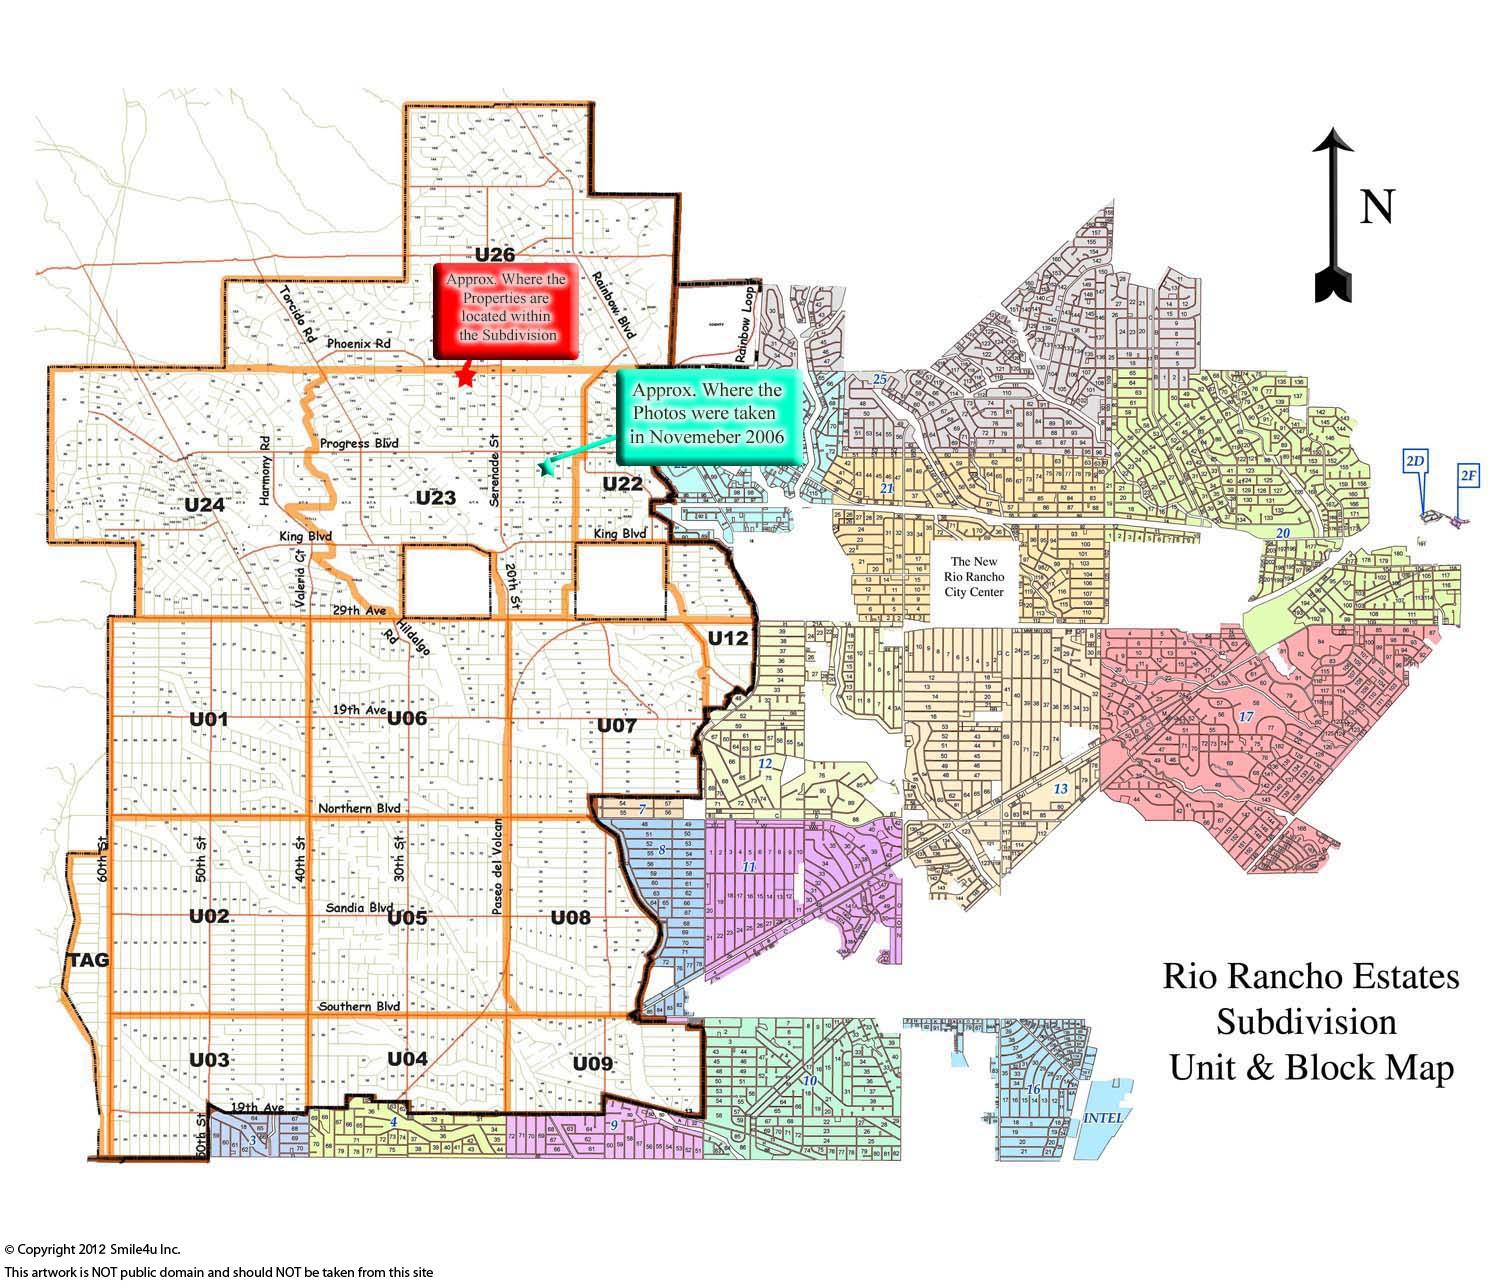 556179_watermarked_Rio Rancho Subdivision Unit Map.jpg